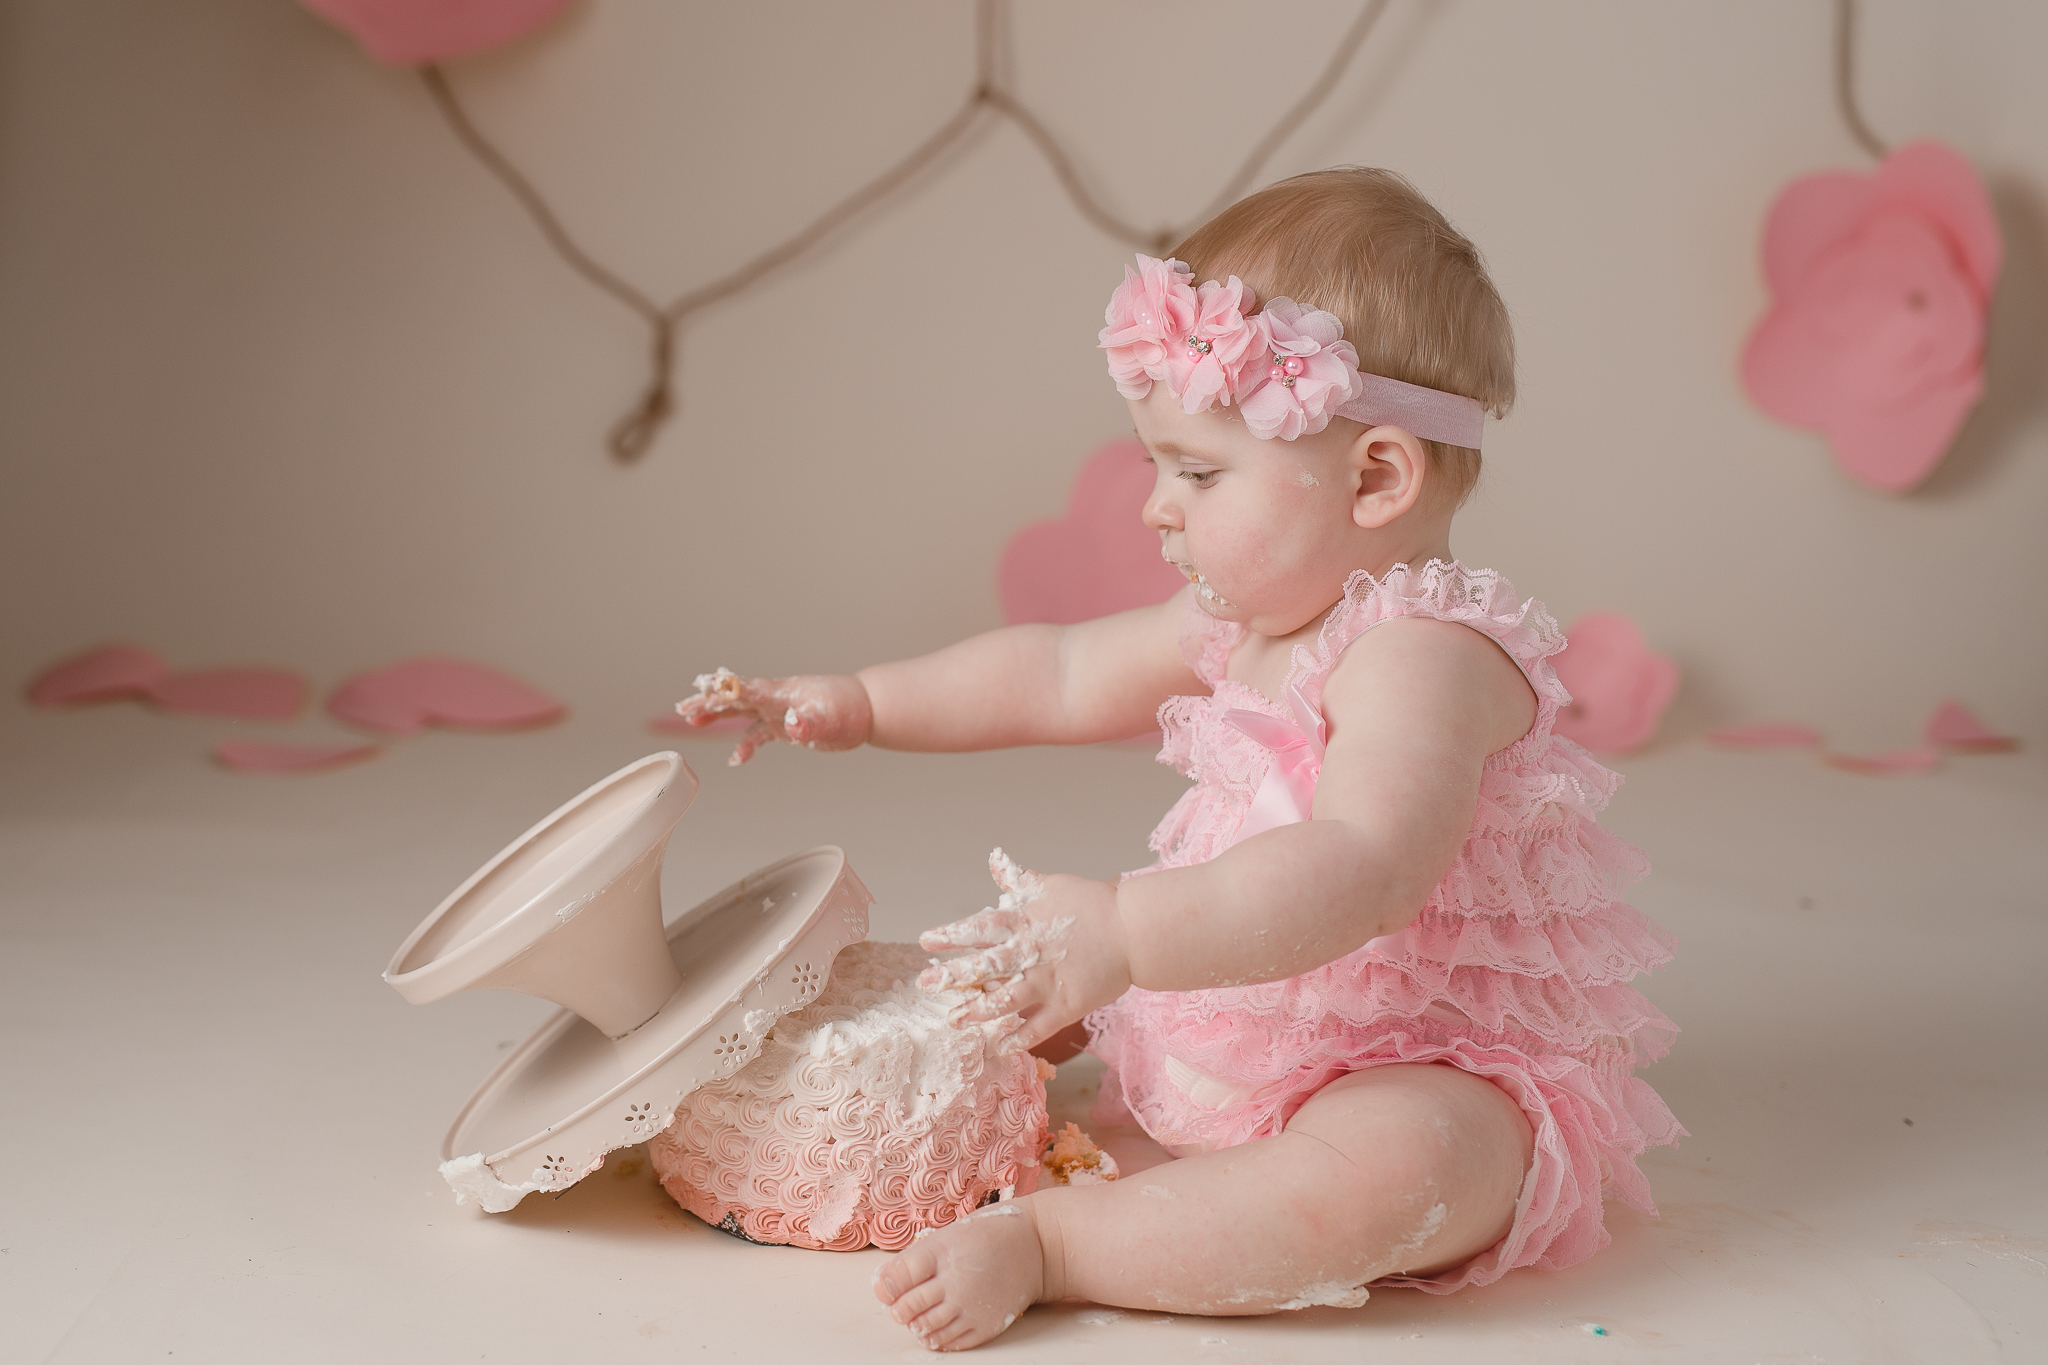 FirstBirthday383NaomiLuciennePhotography032019-Edit.jpg